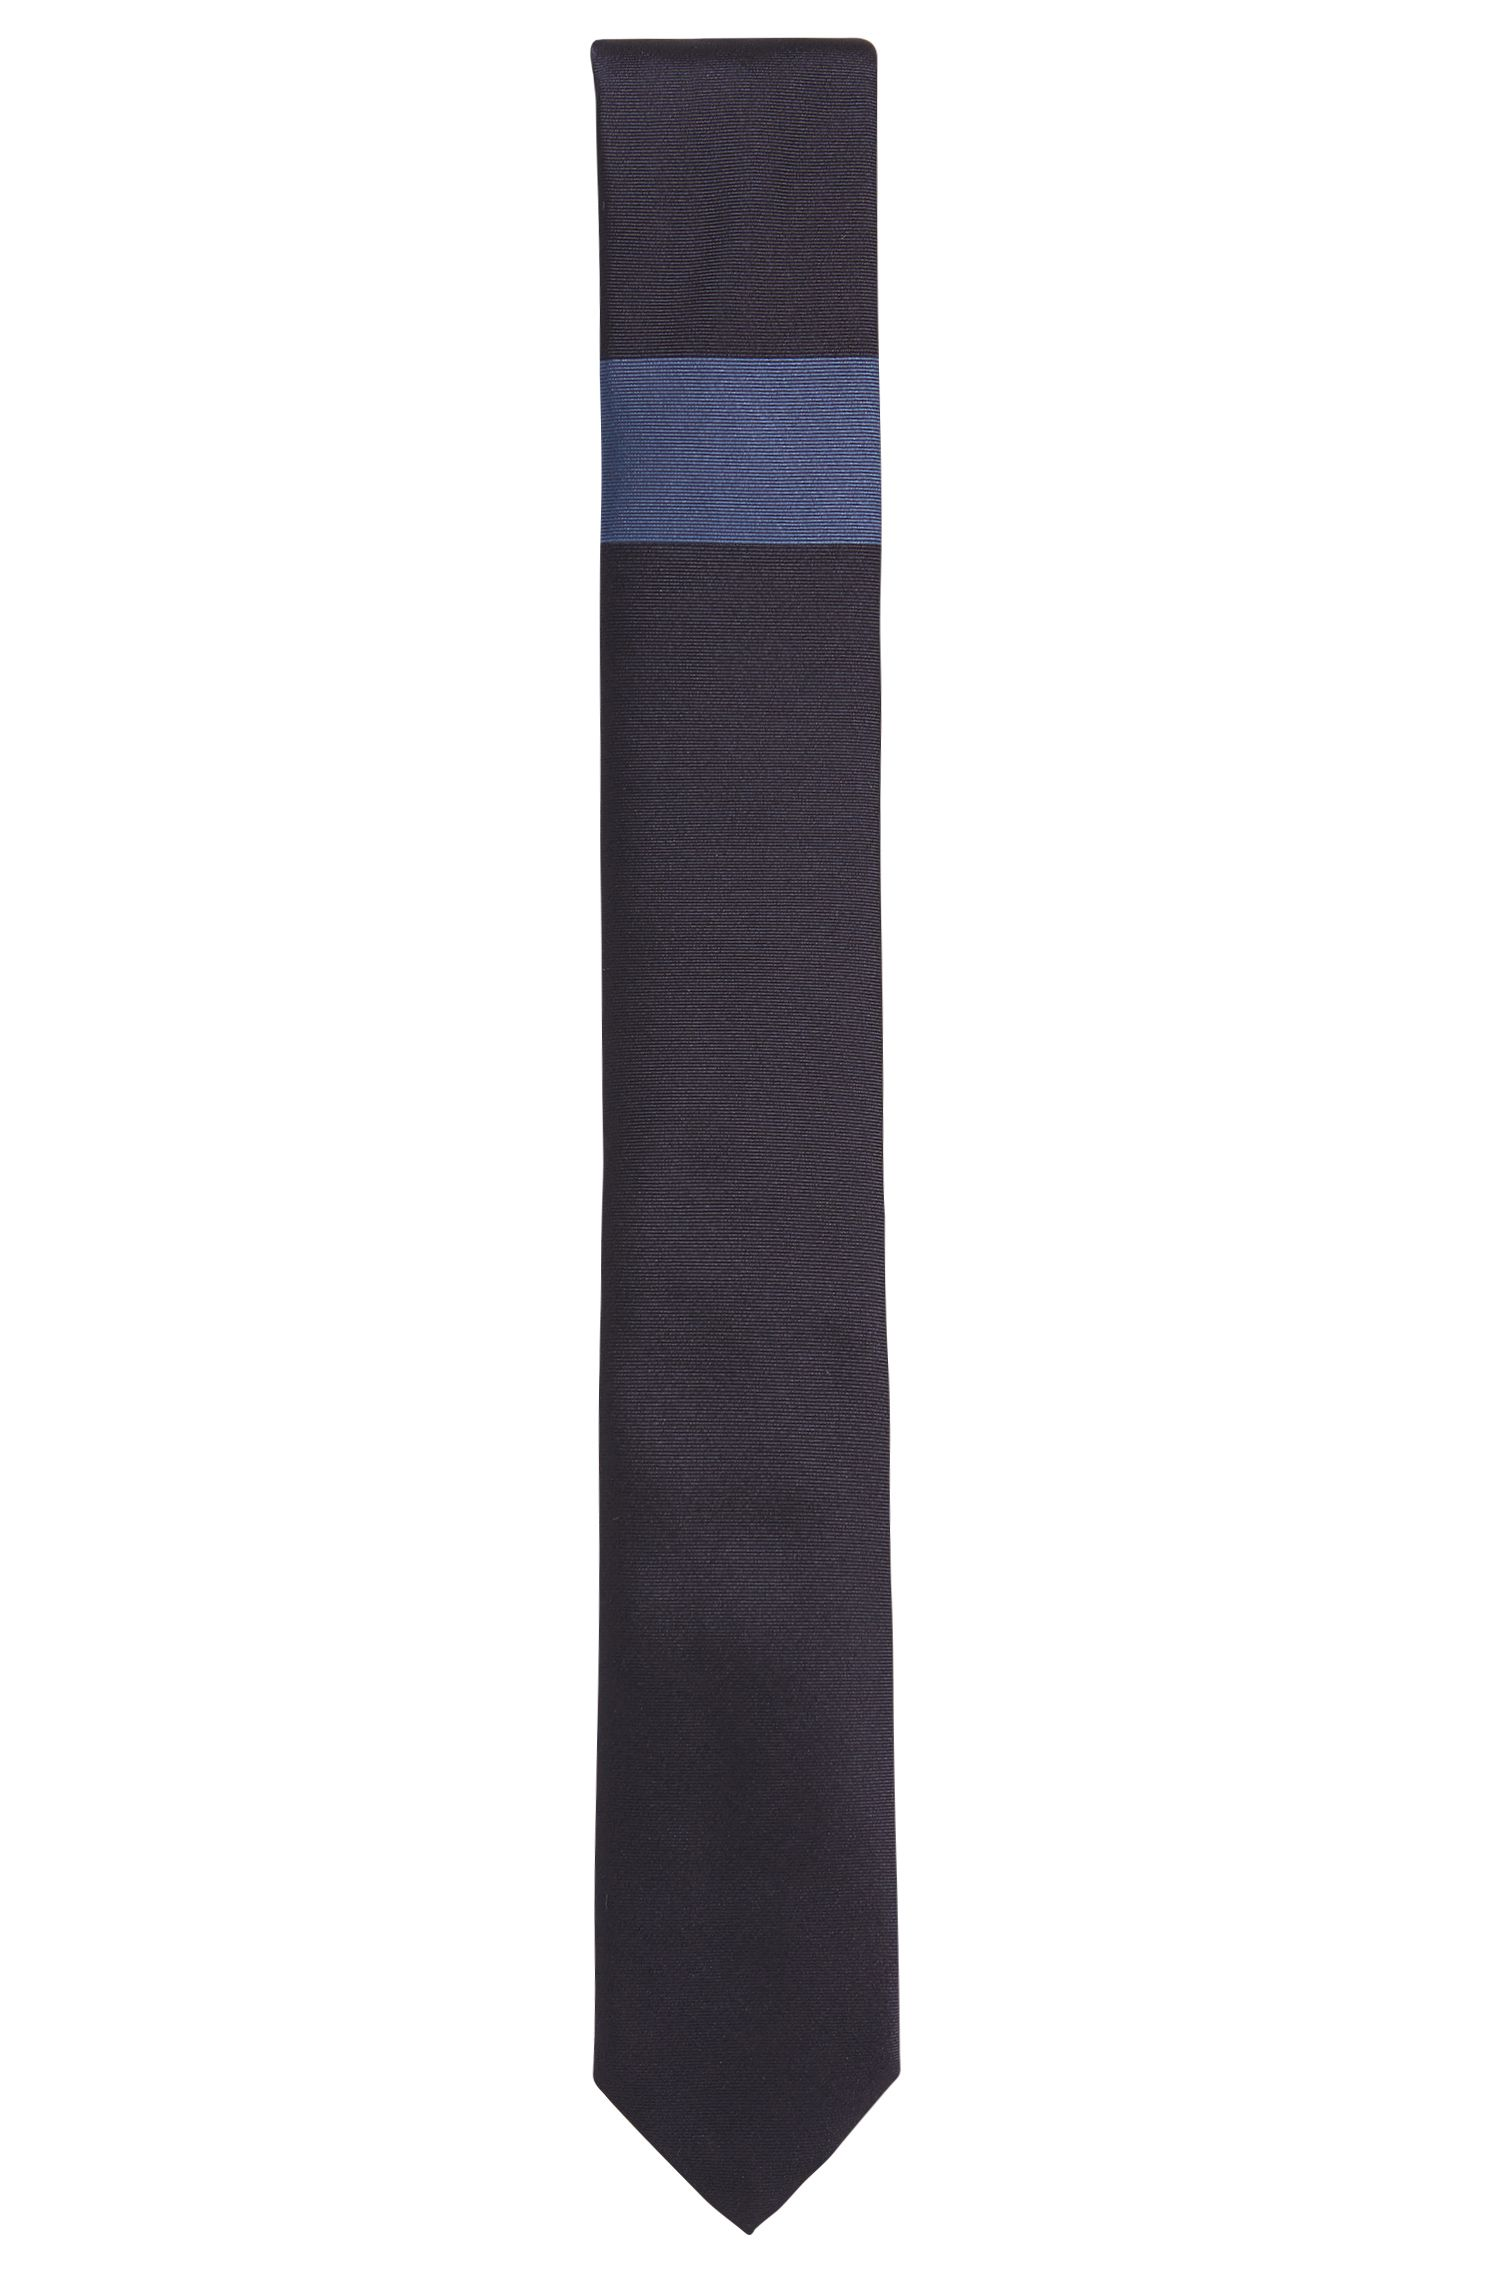 Colorblocked Silk Tie, Slim | Tie 6 cm